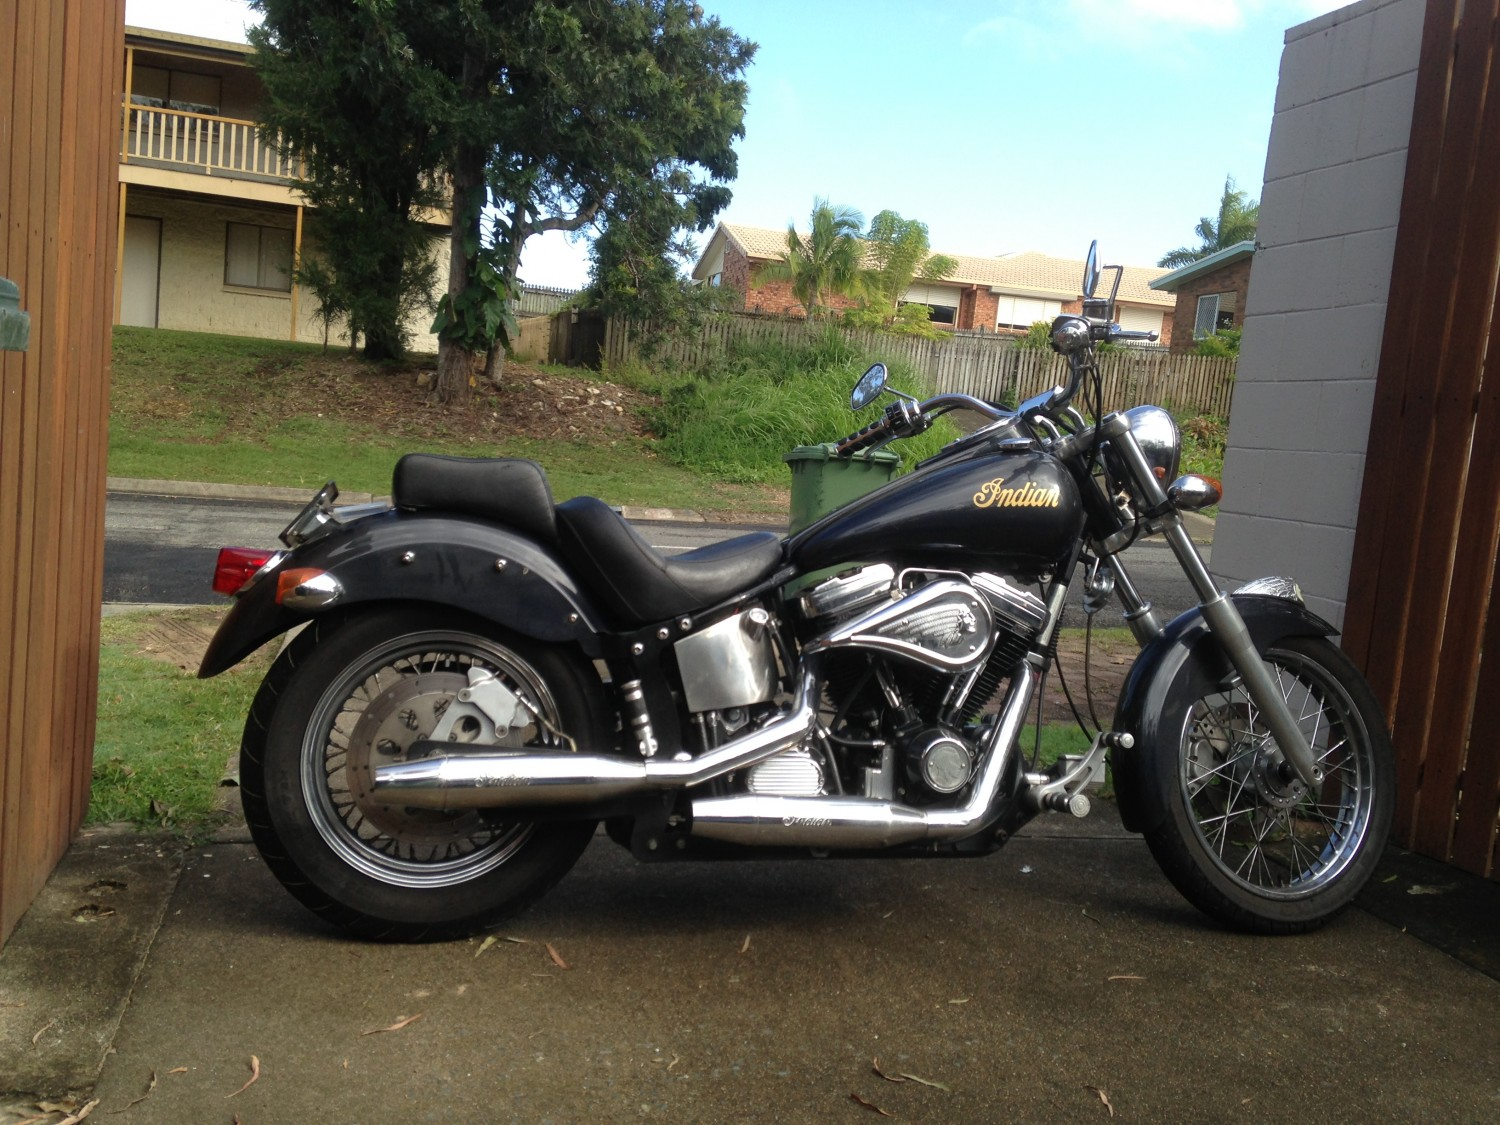 2001 Indian Scout - Scout2001 - Shannons Club-7874